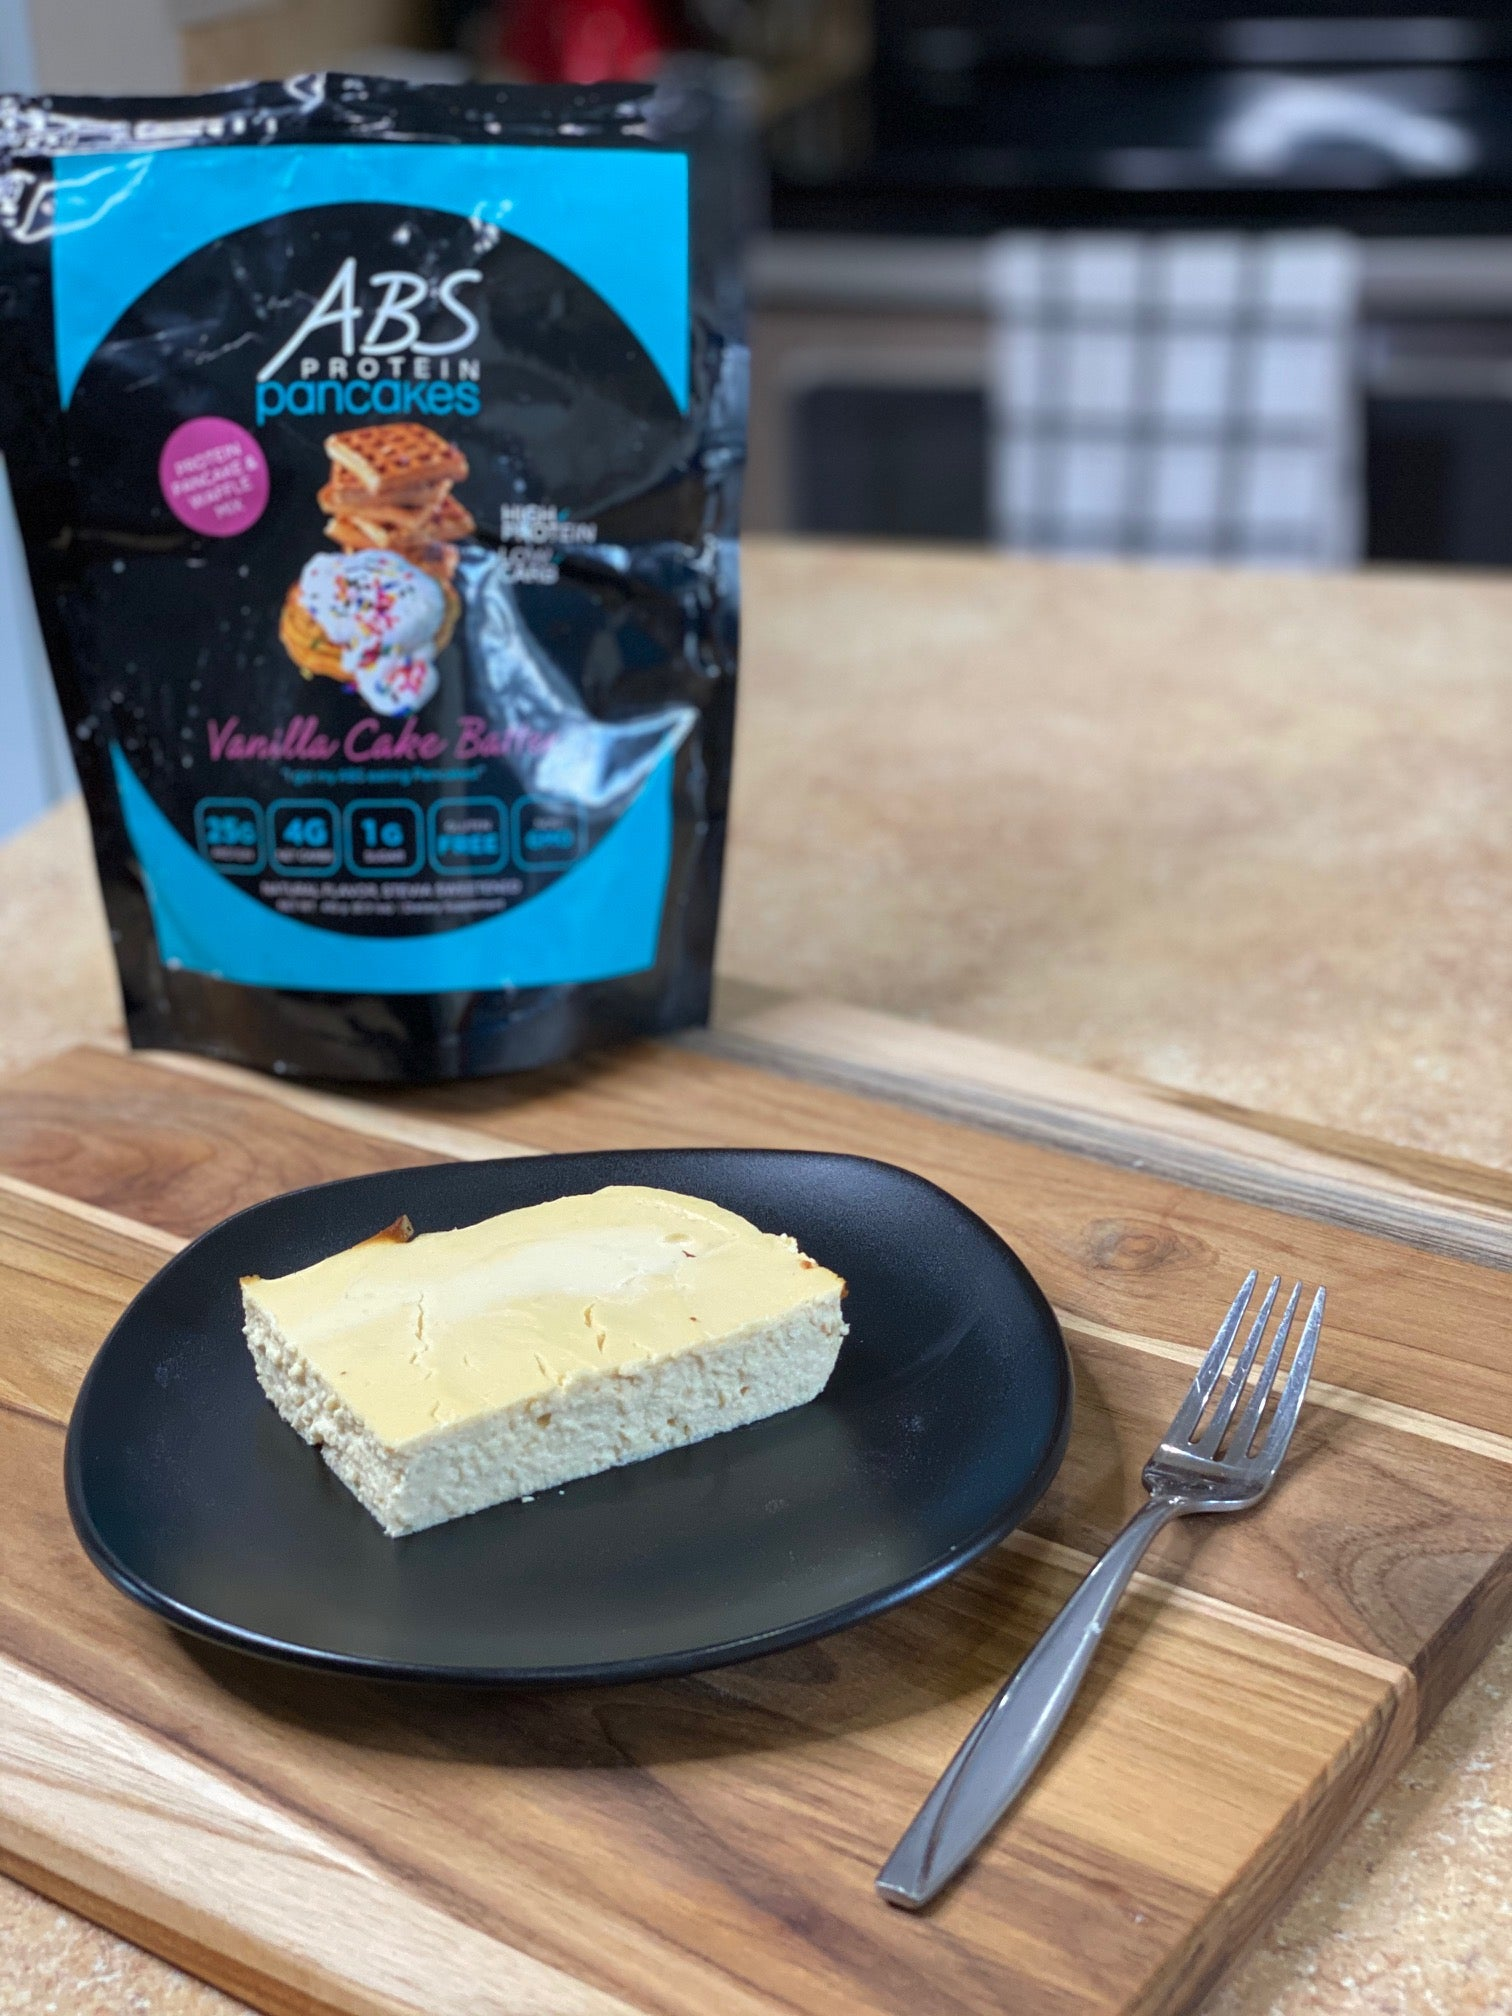 ABS Low Carb Protein Cheesecake